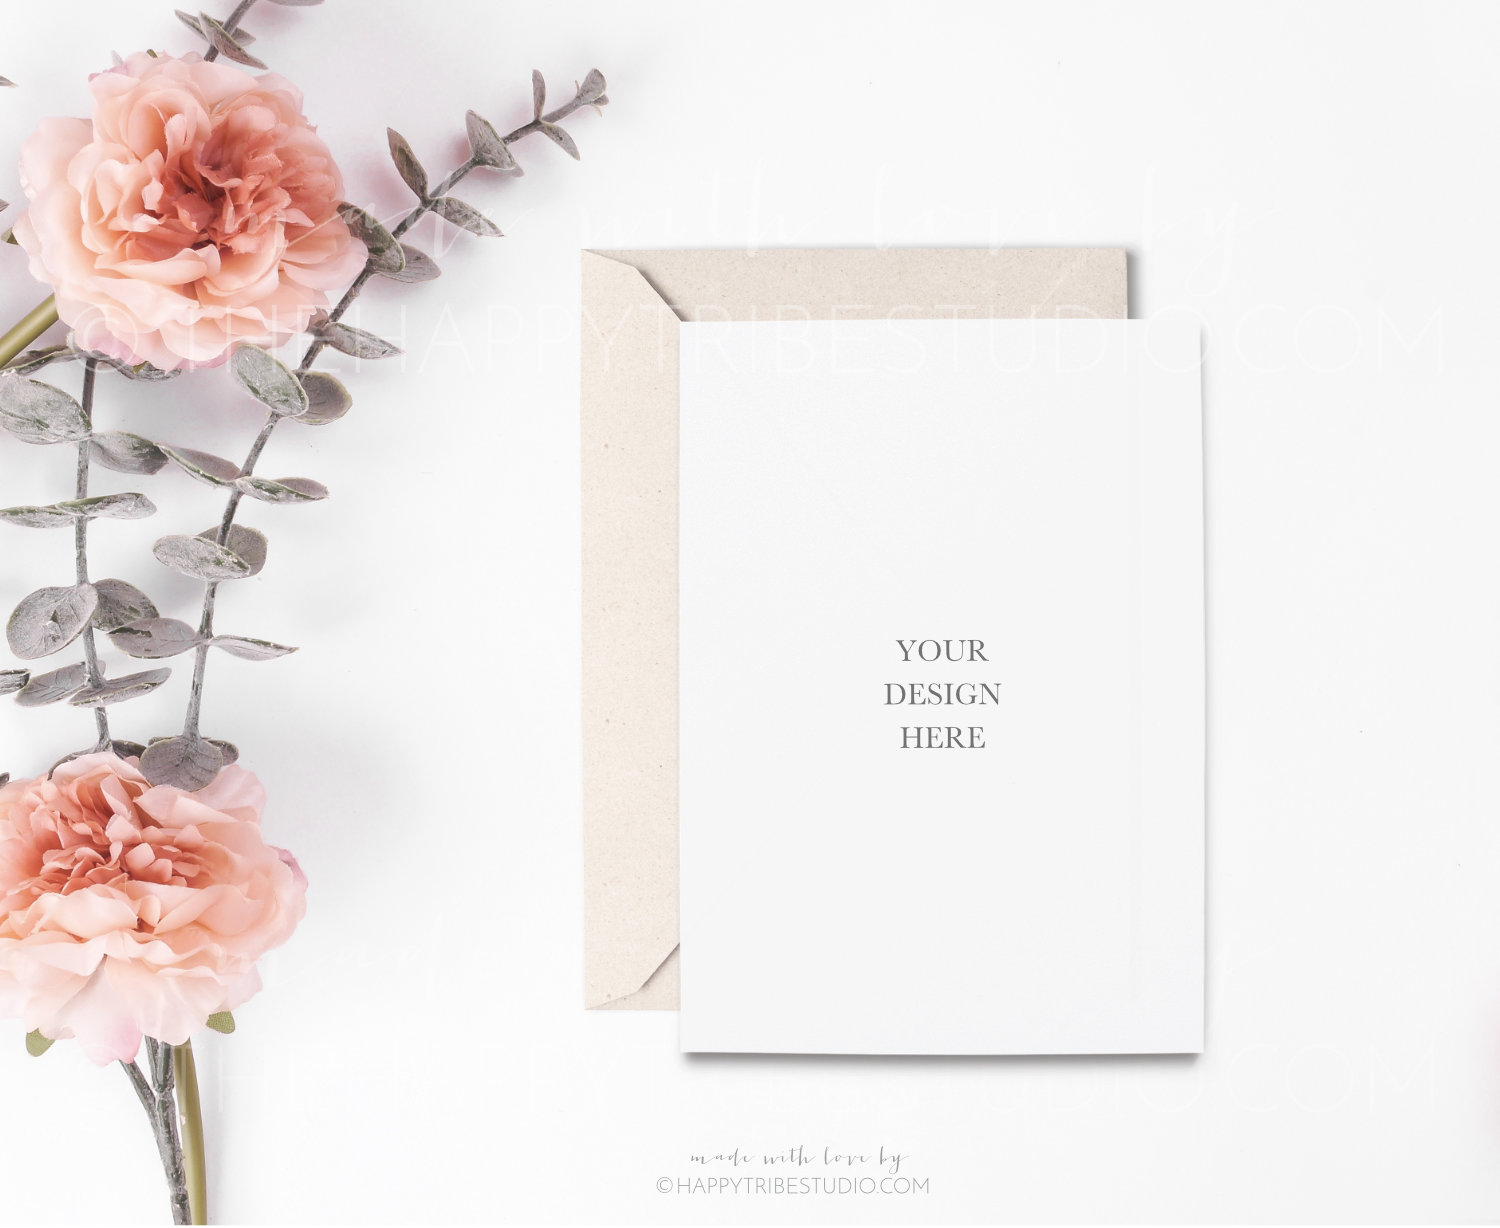 Stationery Mockup Bundle example image 3